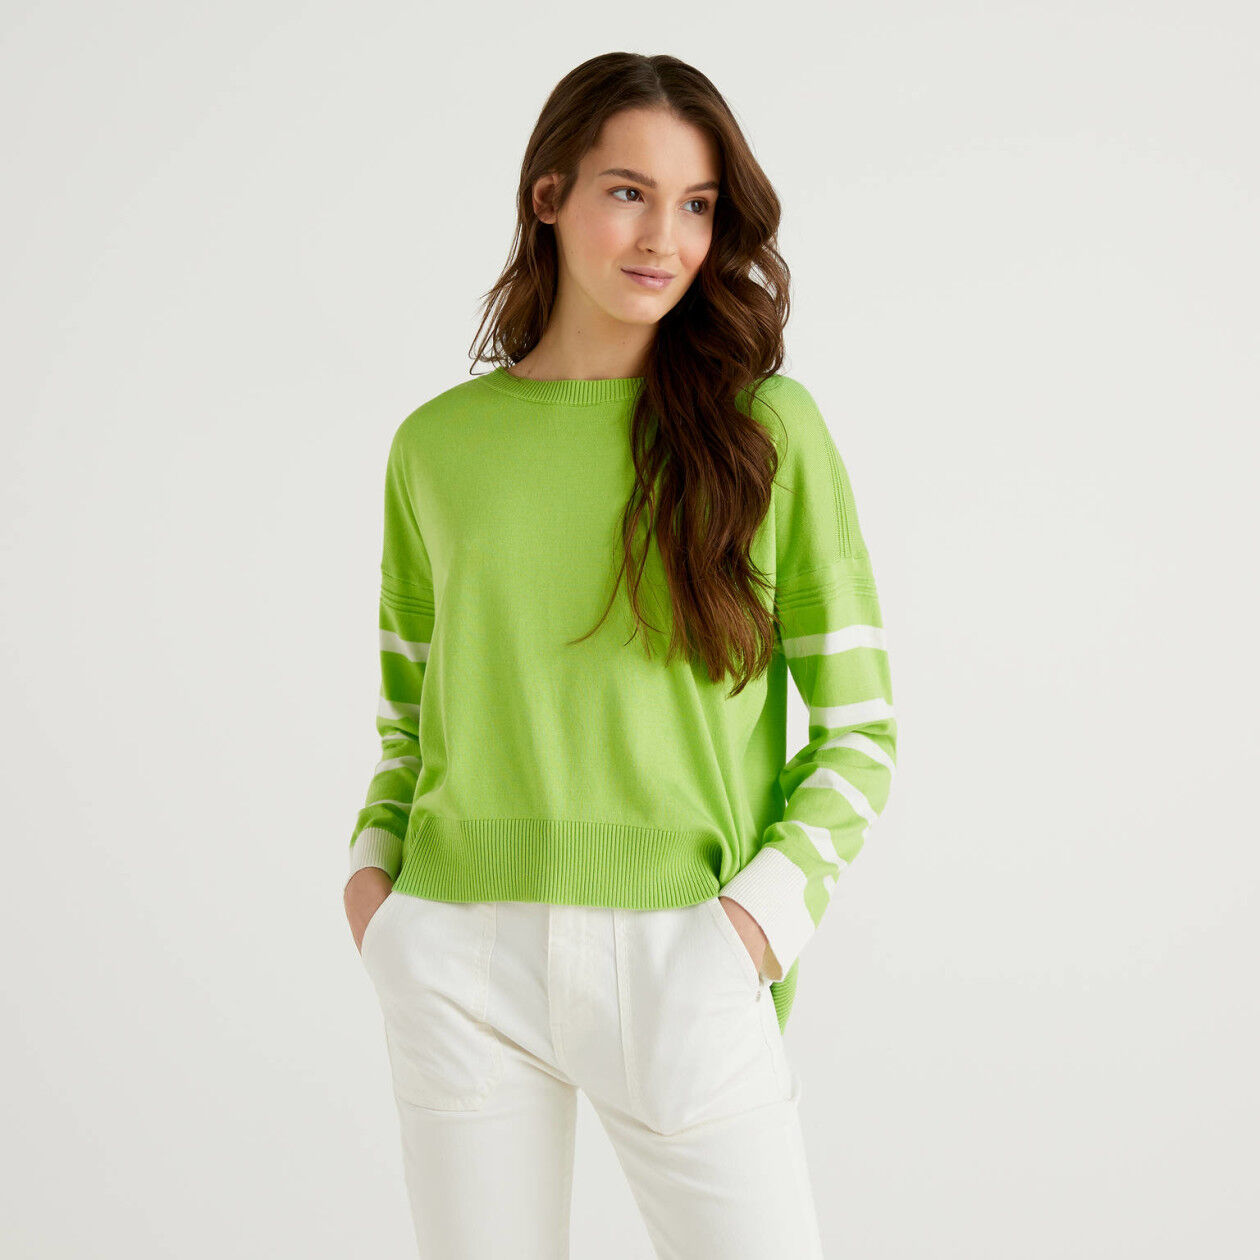 Light green sweater with slit on the back